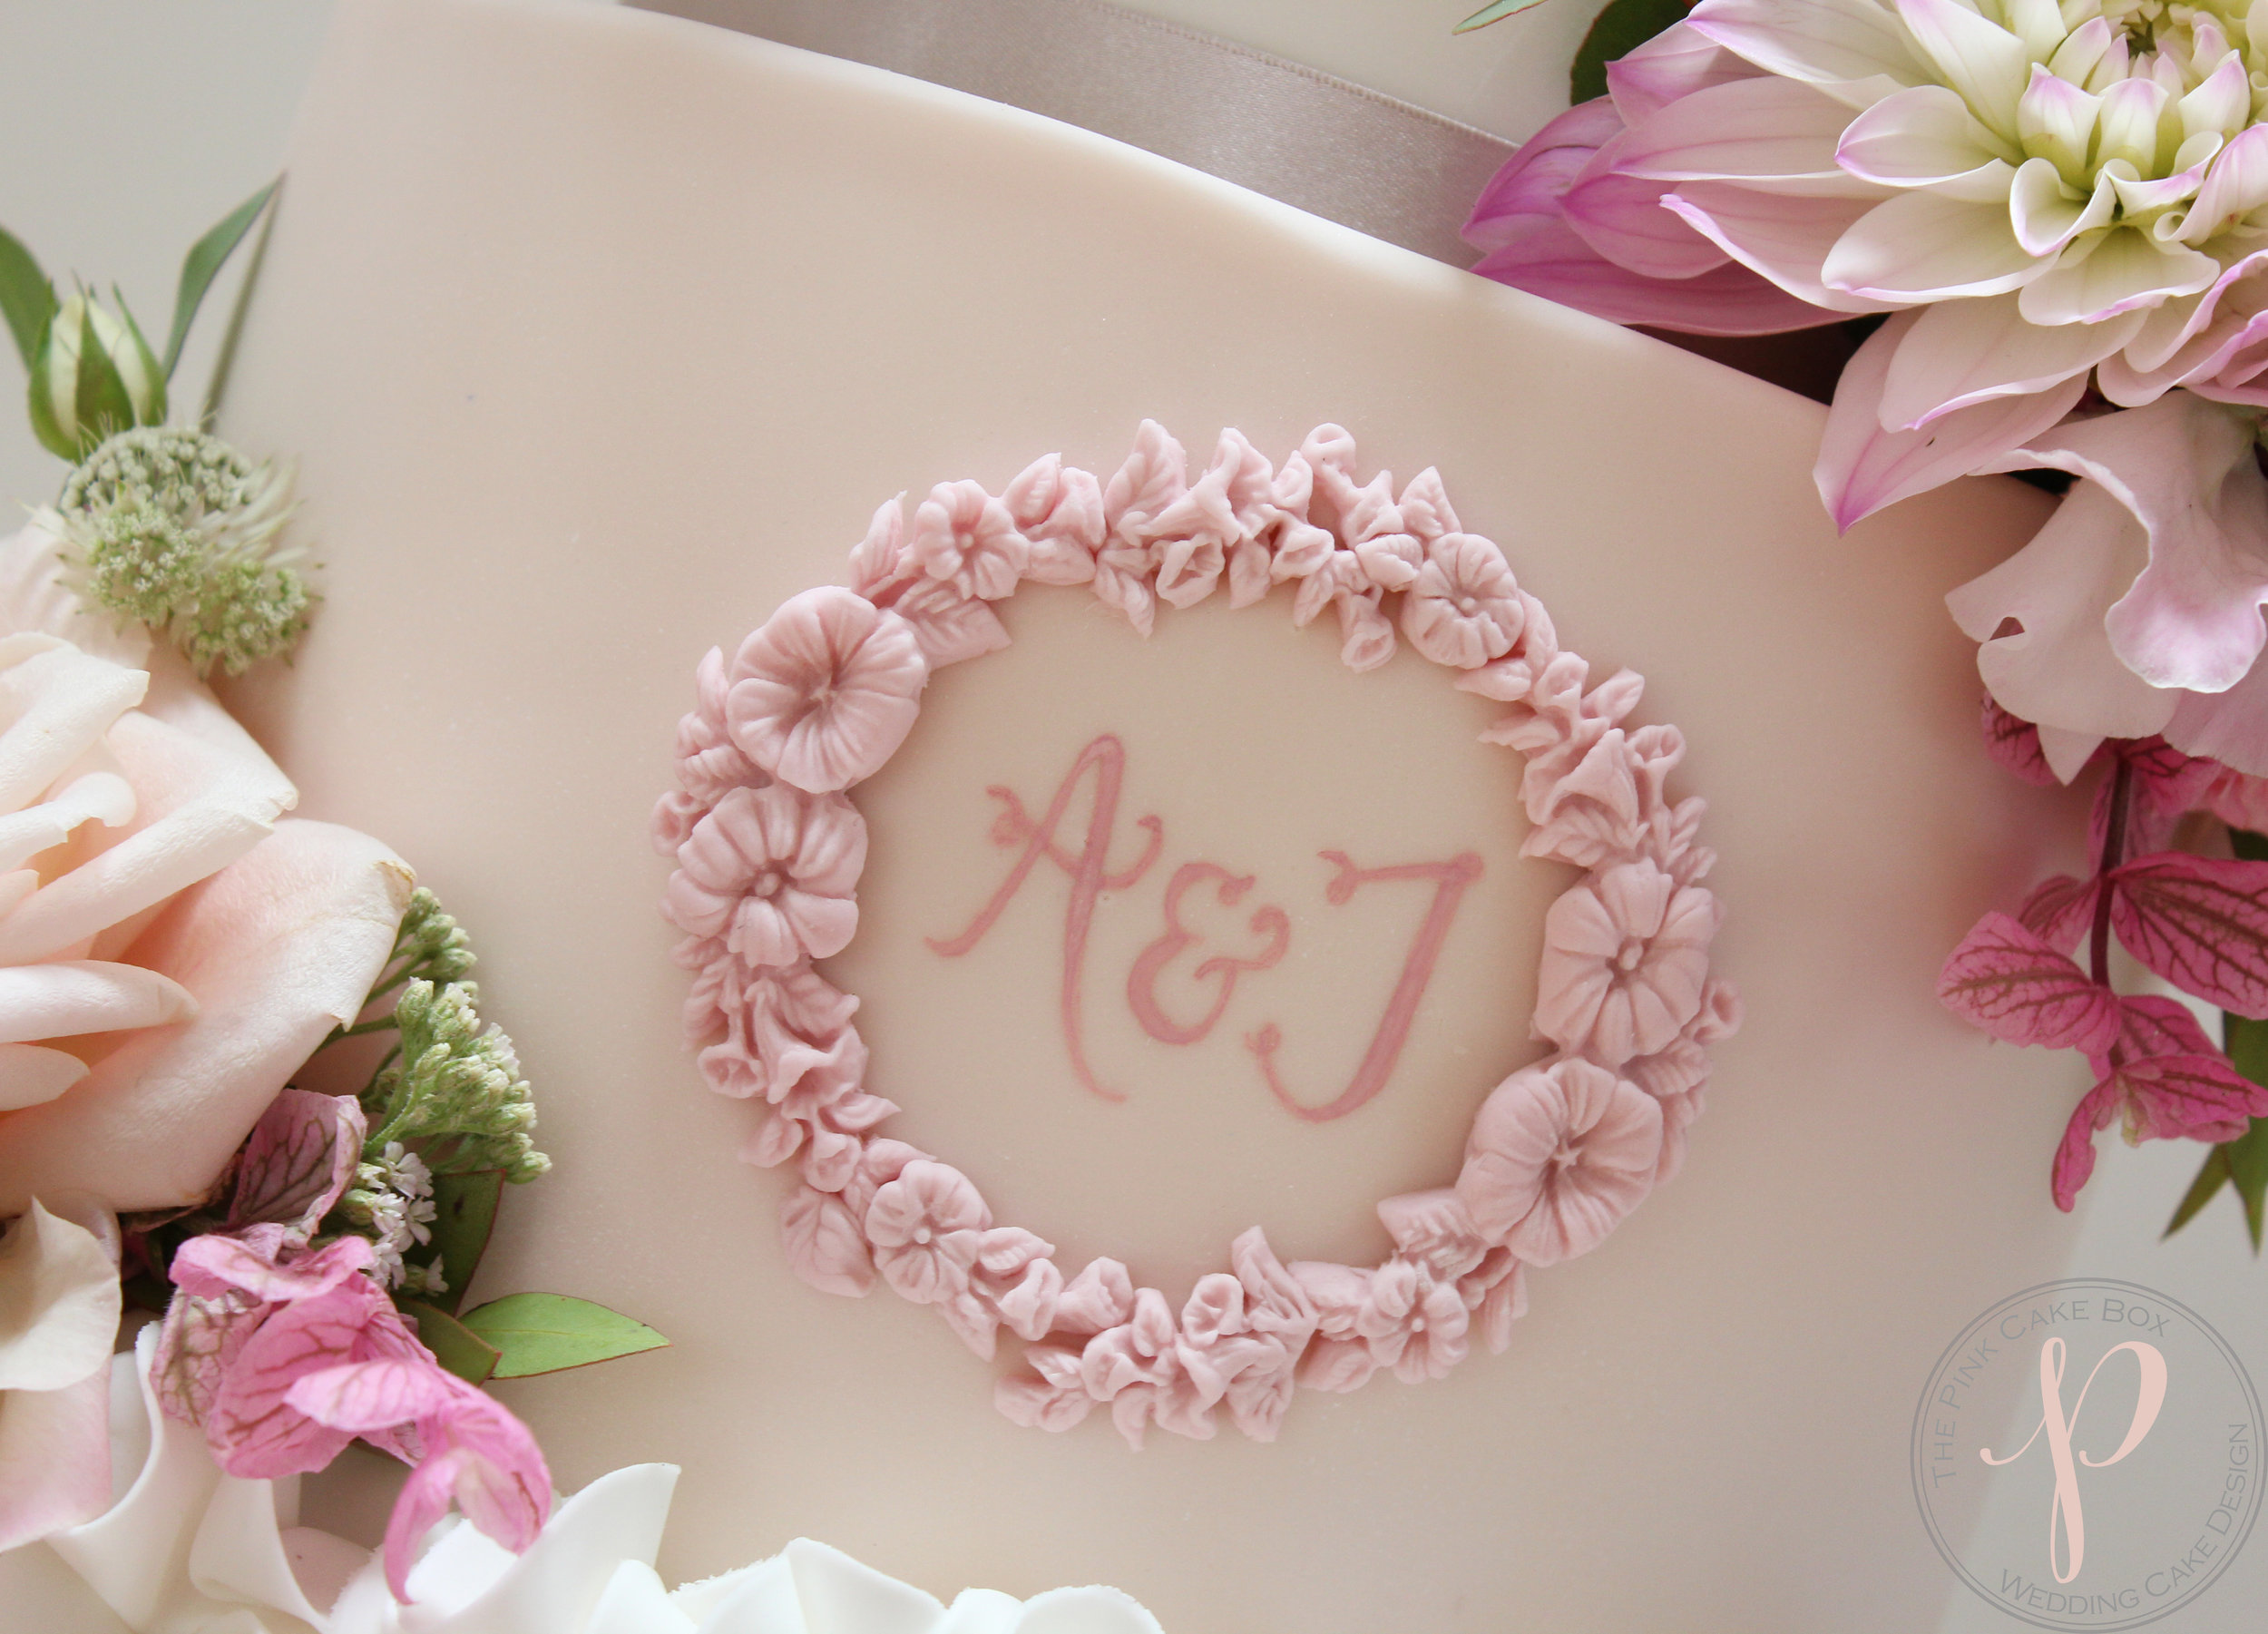 calligraphy initials dusky blush wedding.jpg